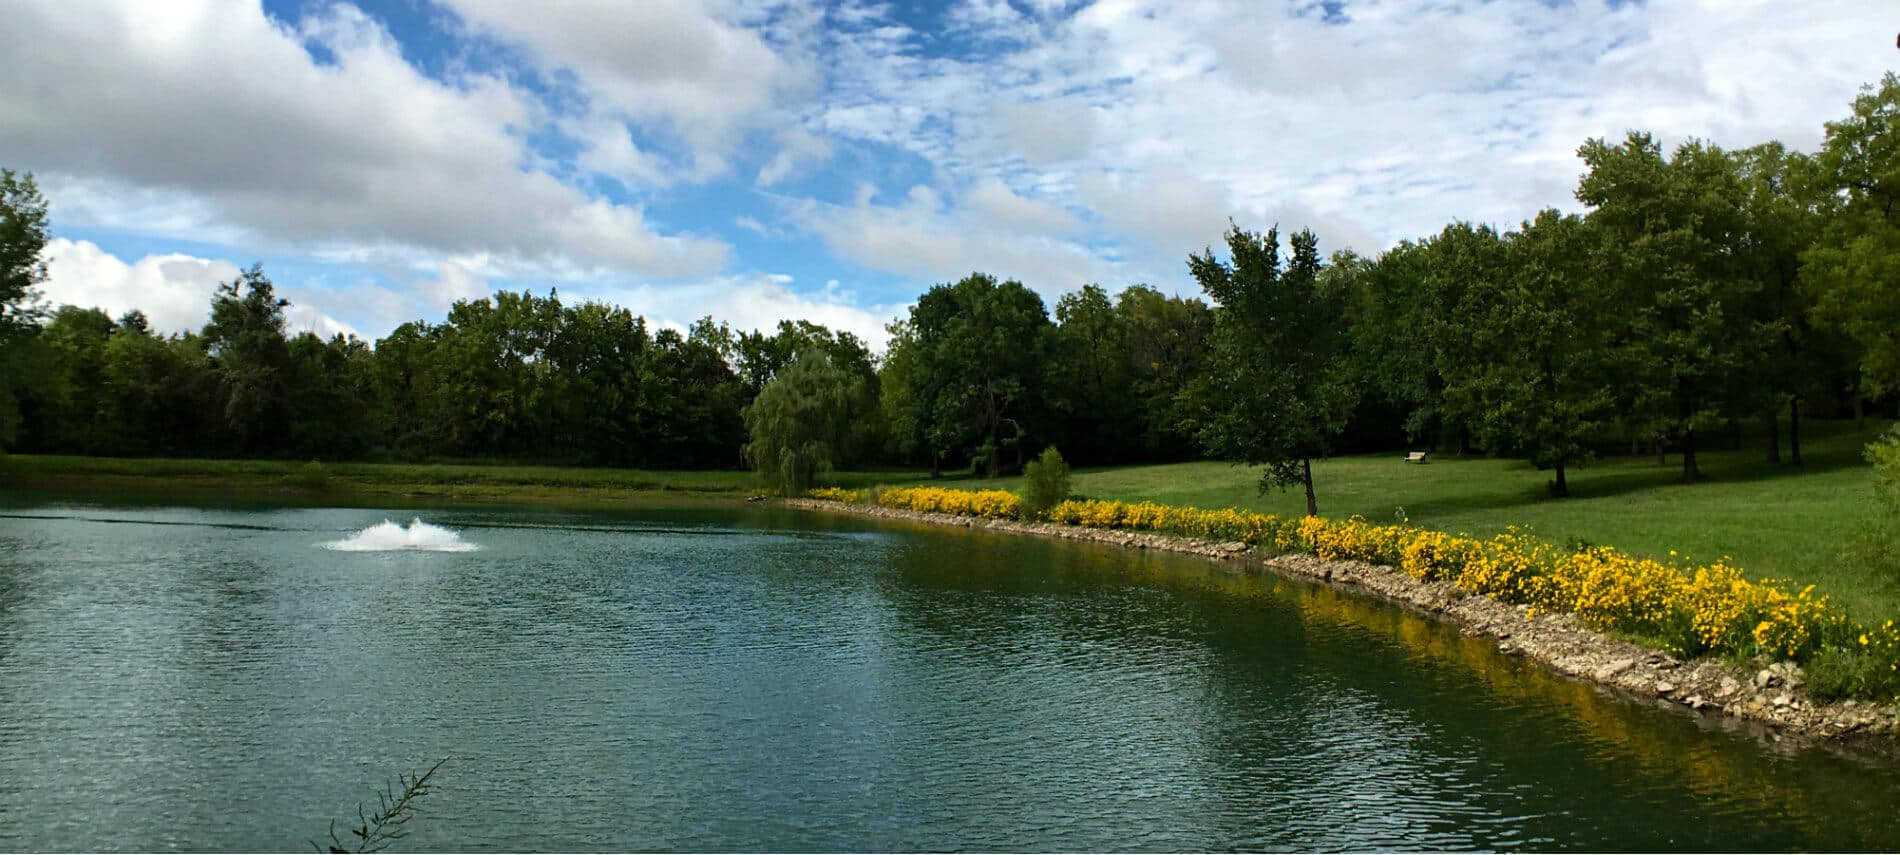 Pond surrounded by yellow flowering shrubs, green lawn, dark green trees, and blue skies with white clouds